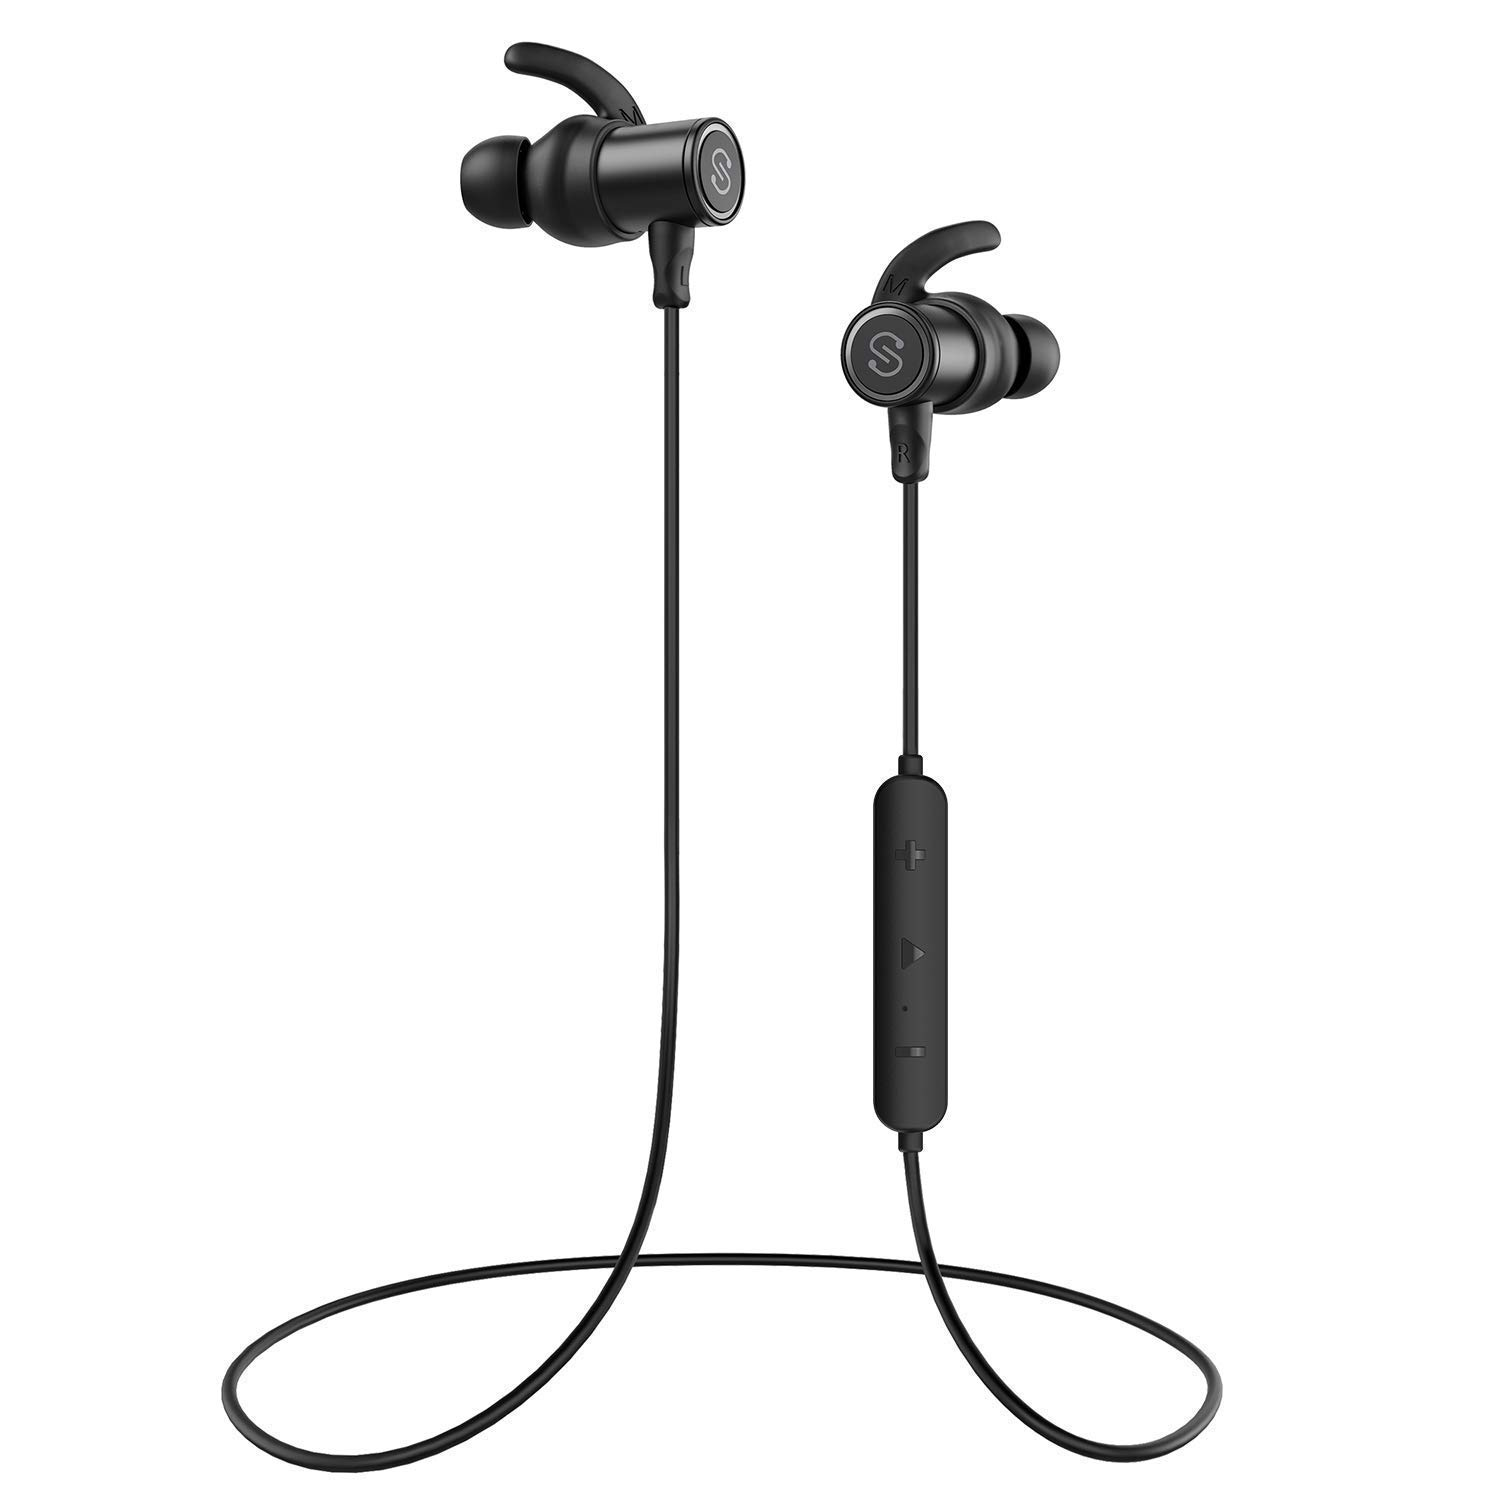 Soundpeats Magnetic Wireless Earbuds Bluetooth Headphones